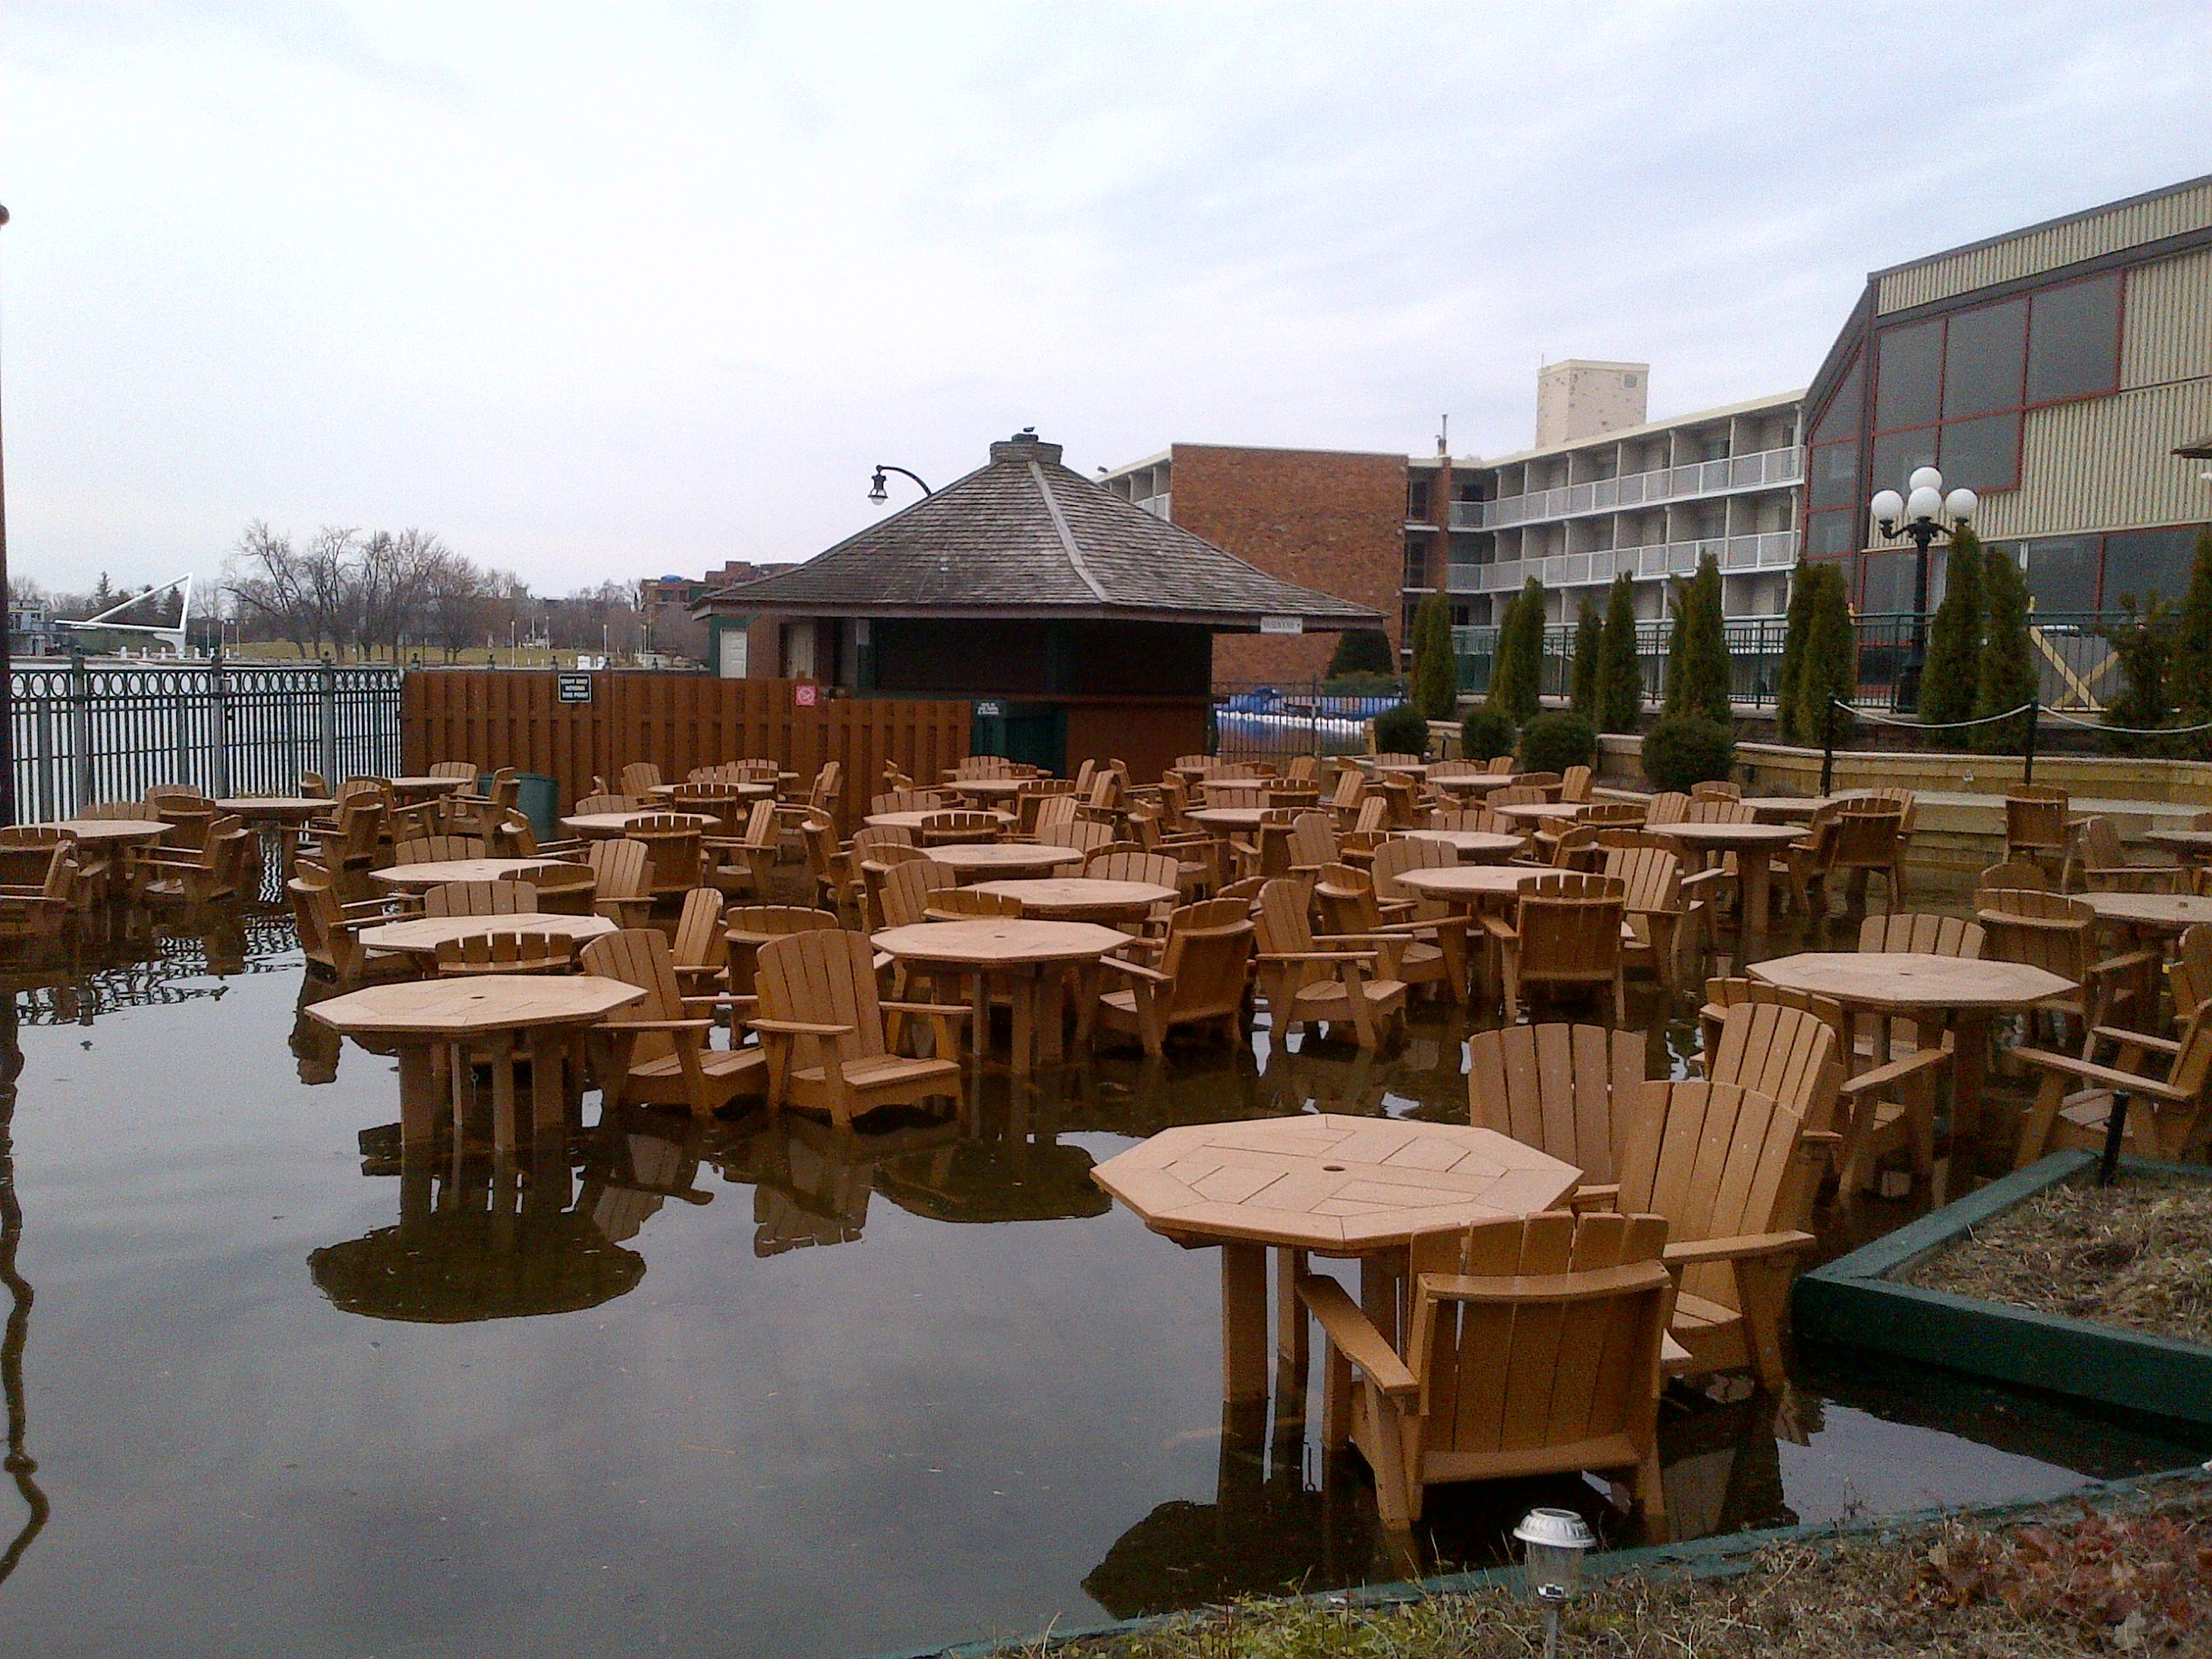 Holiday Inn patio under water